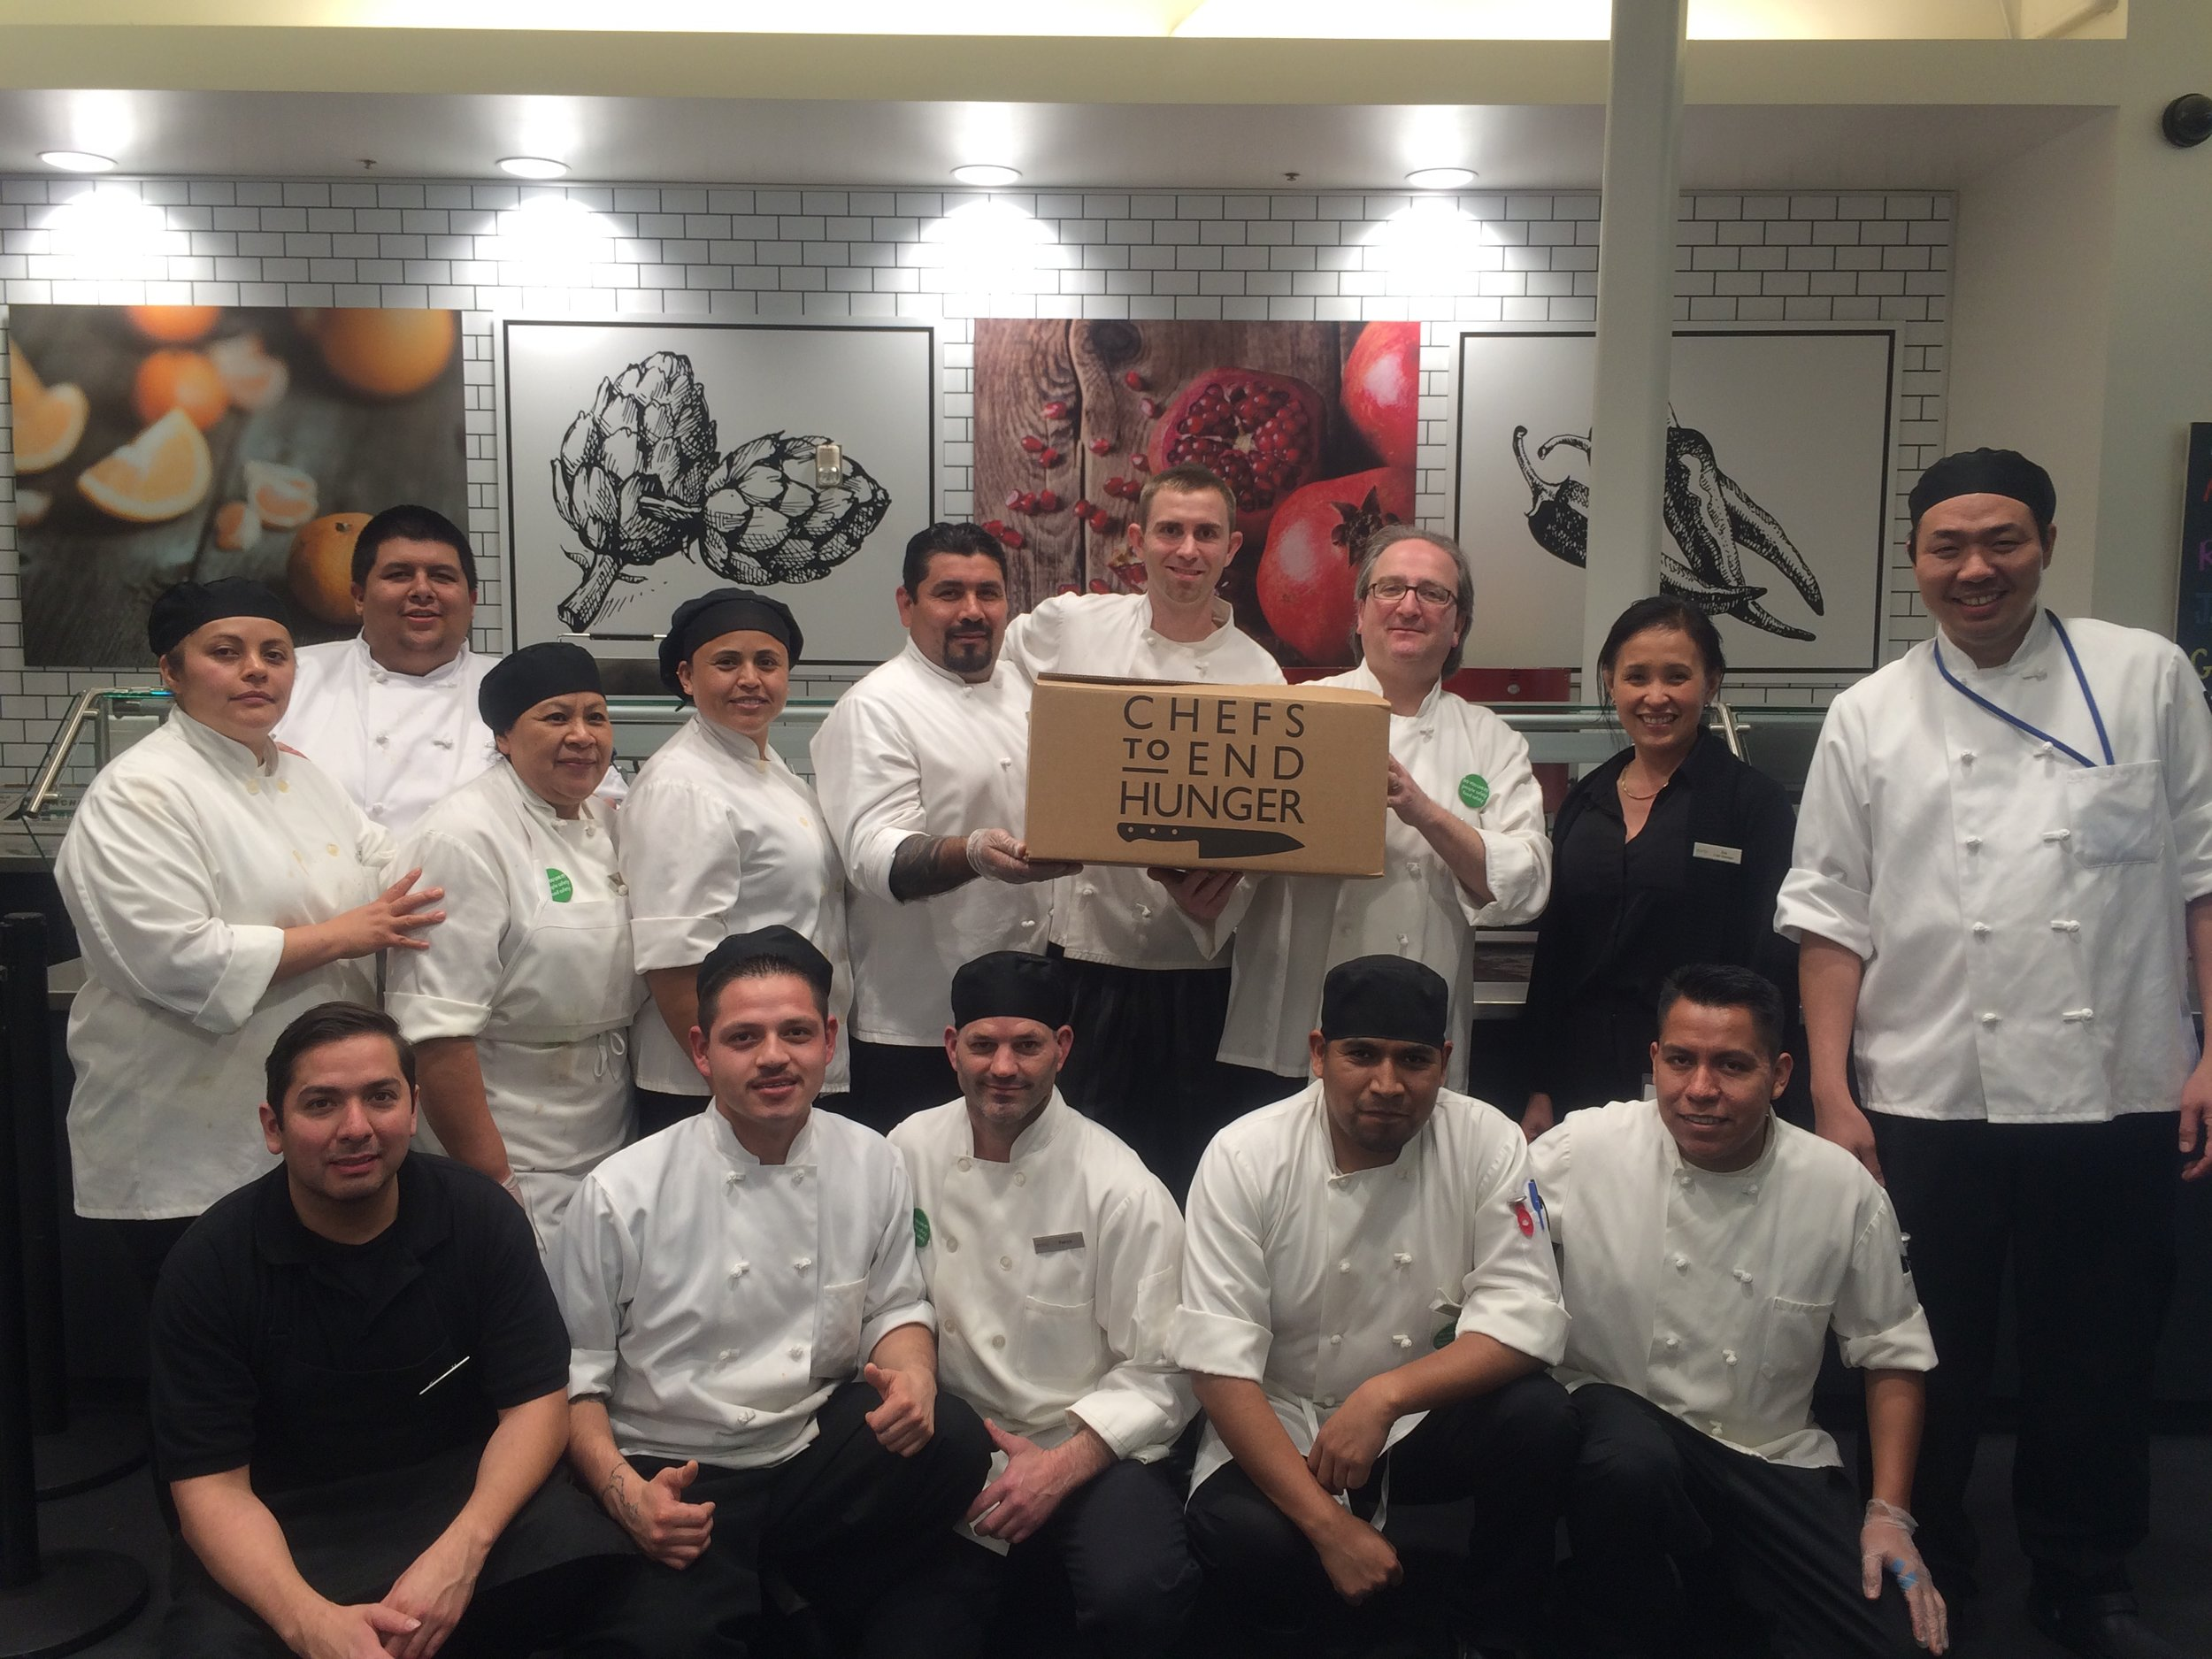 Chefs at Bon Appétit at SAP are showing their pride for Chefs to End Hunger by posing with a hunger kit.